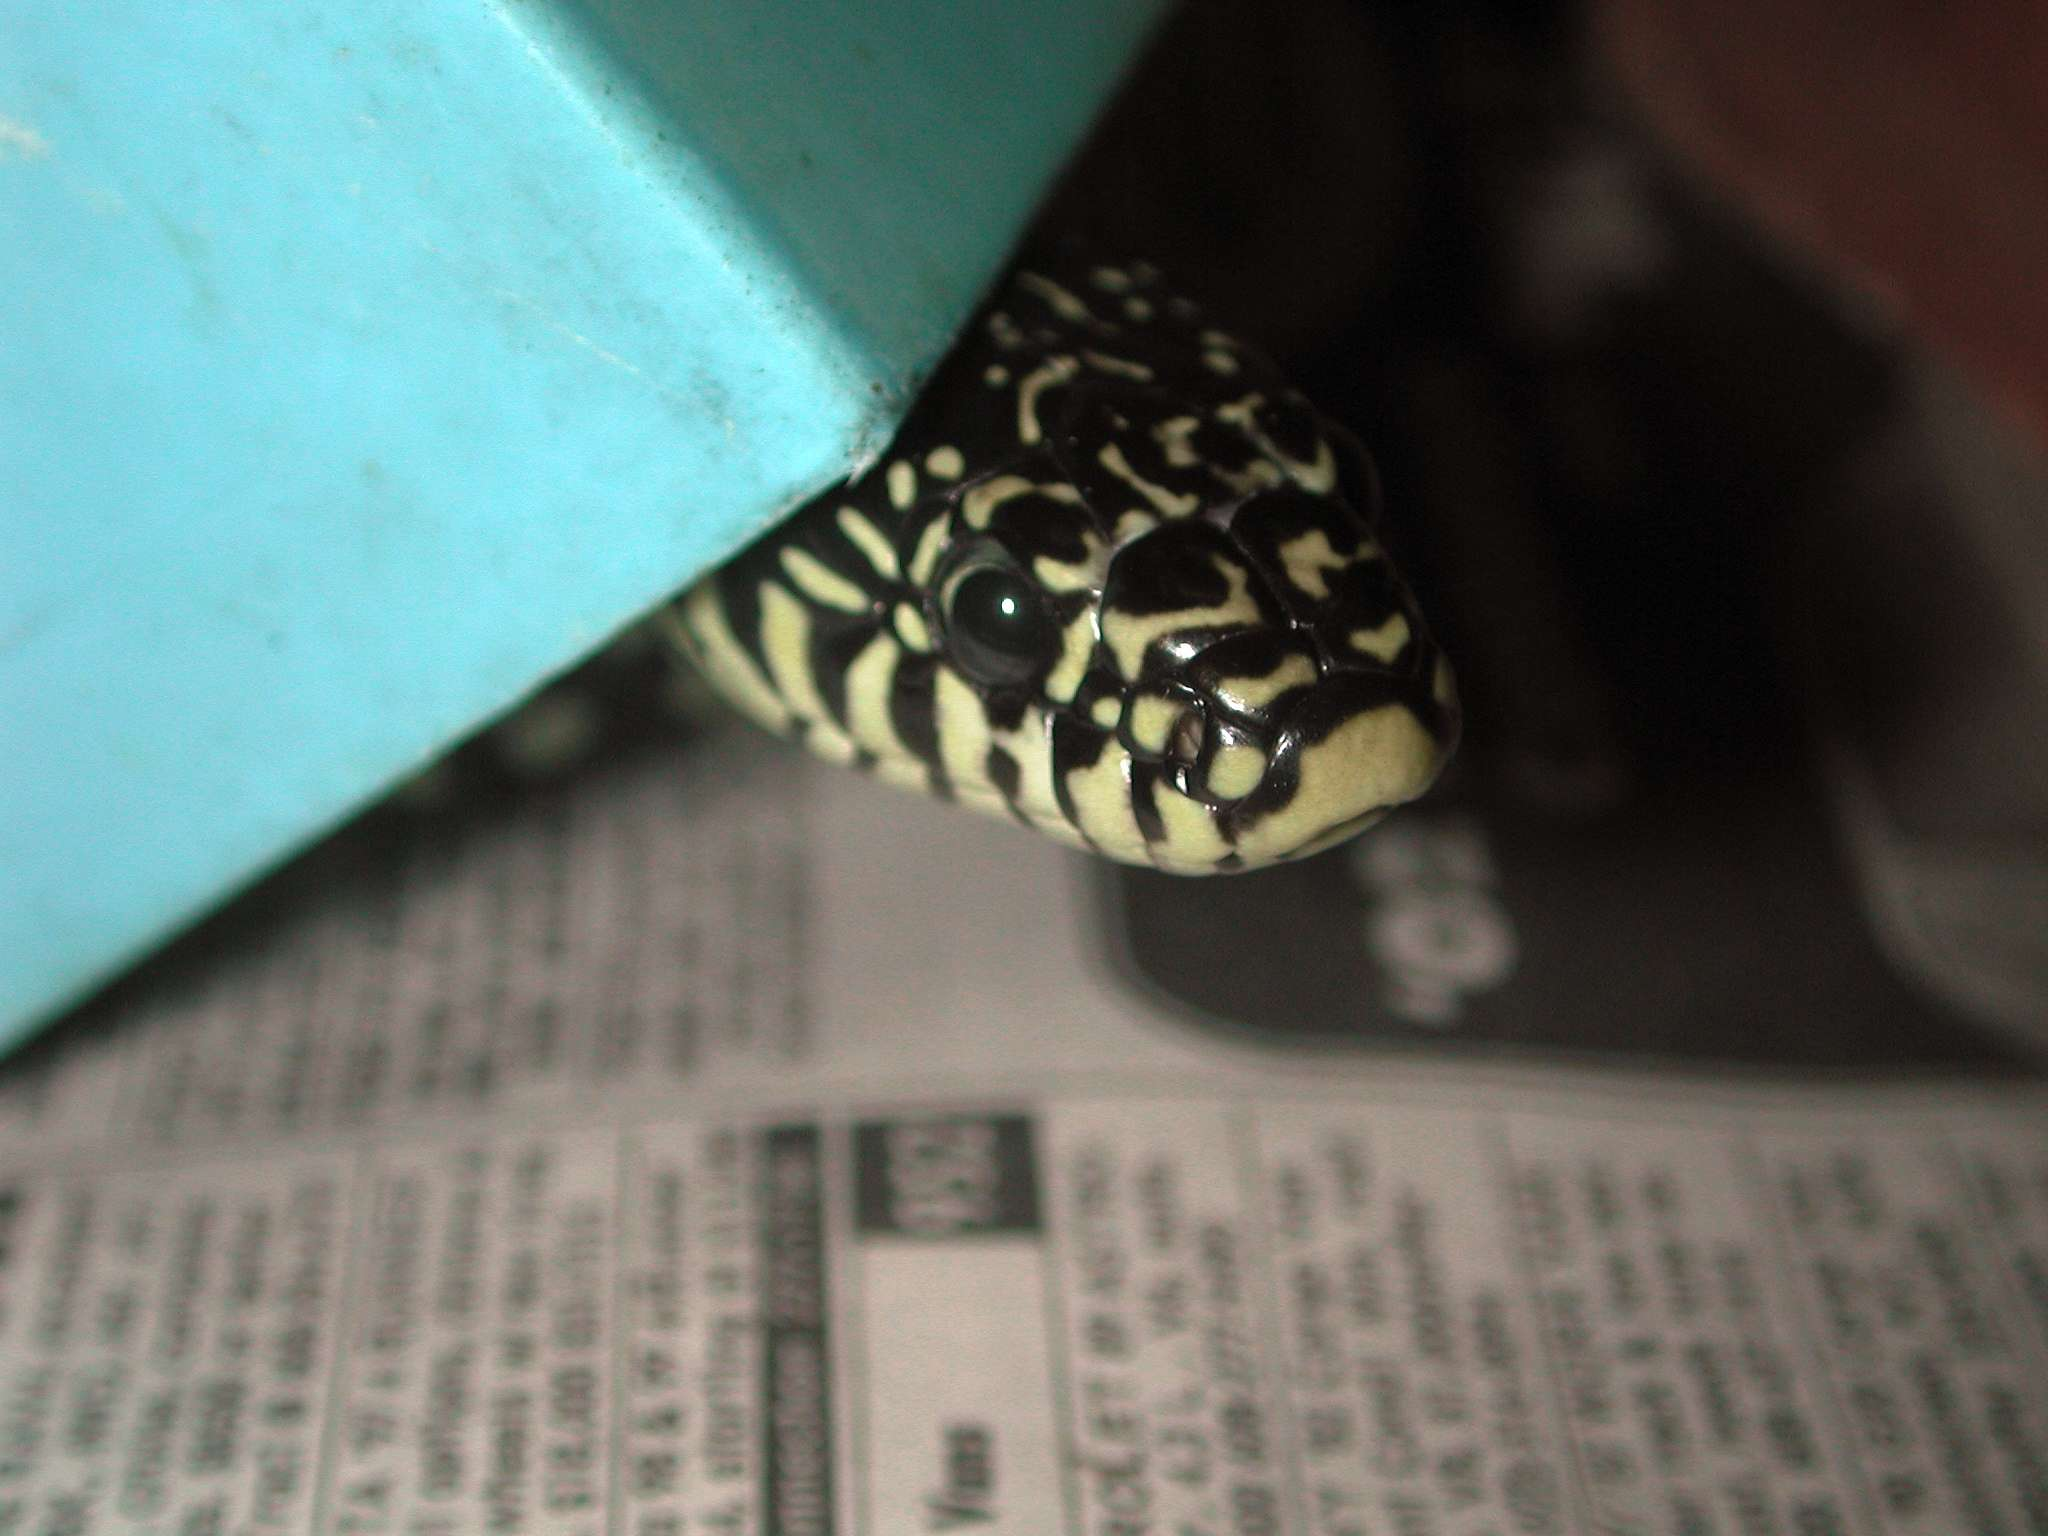 Speckled kingsnake on newspaper